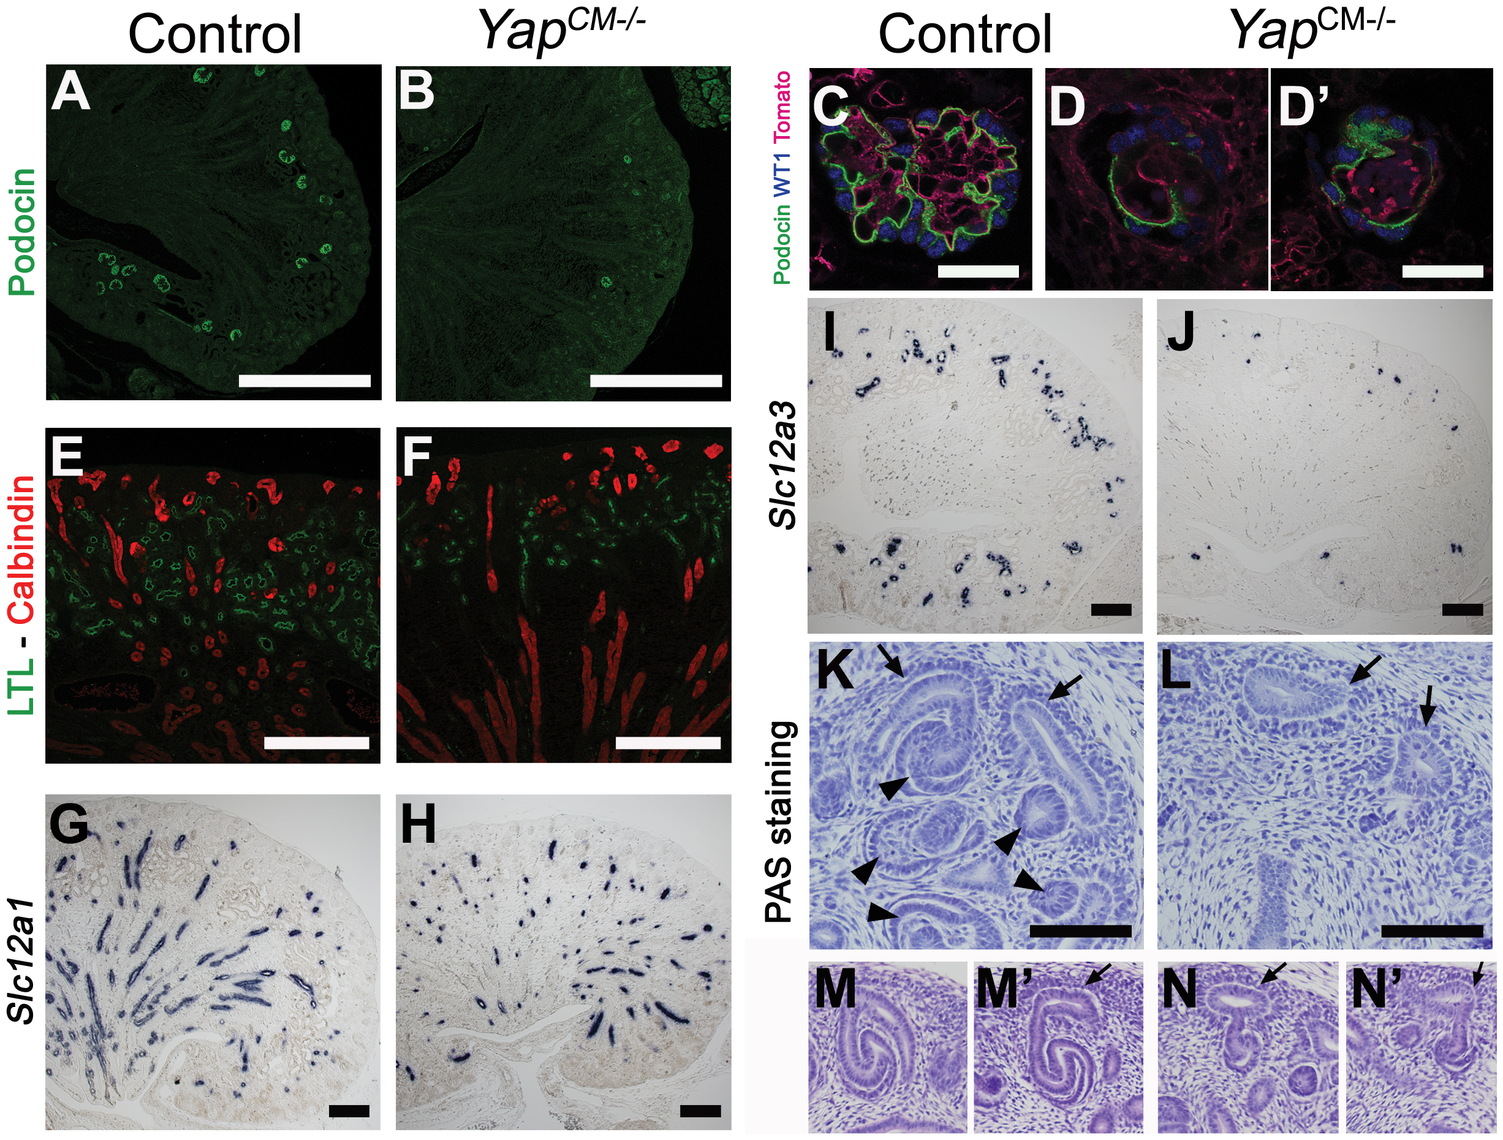 Loss of CM-derived epithelial structures and abnormal morphogenesis in <i>Yap</i> mutants.